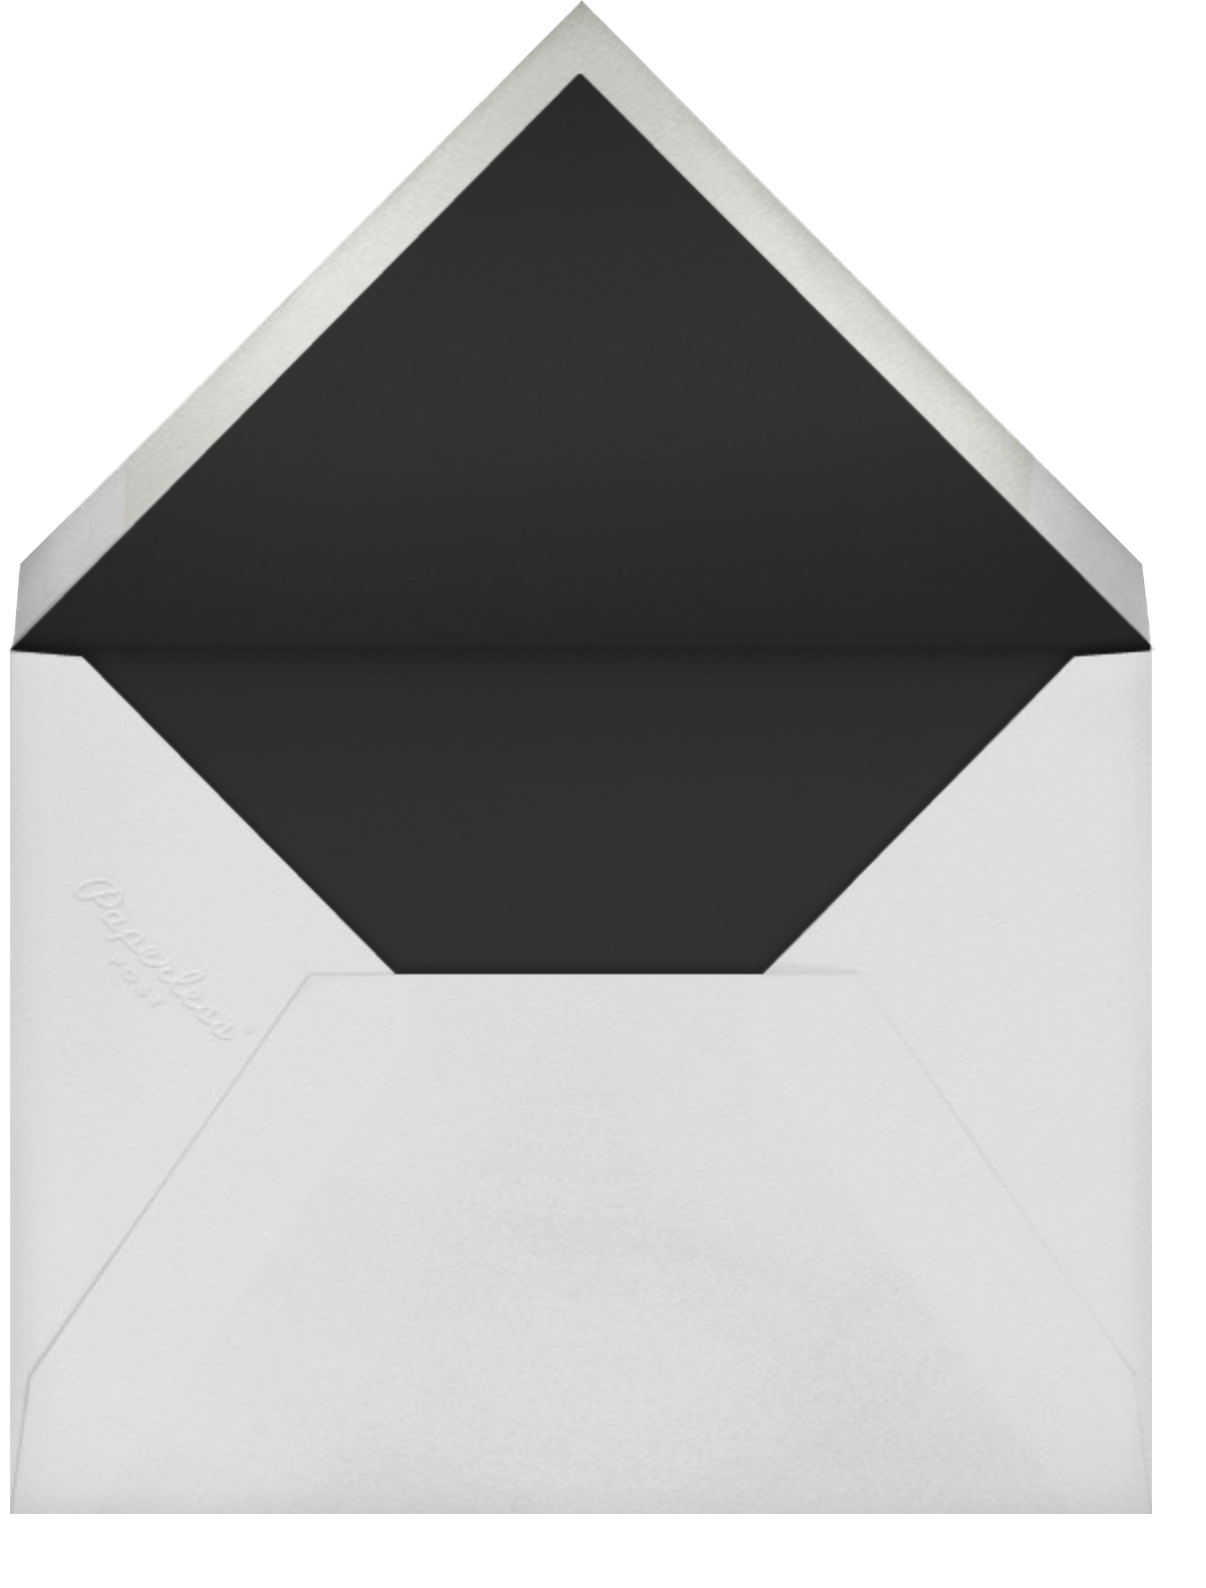 Beacon Hill - Taupe - Paperless Post - Personalized stationery - envelope back